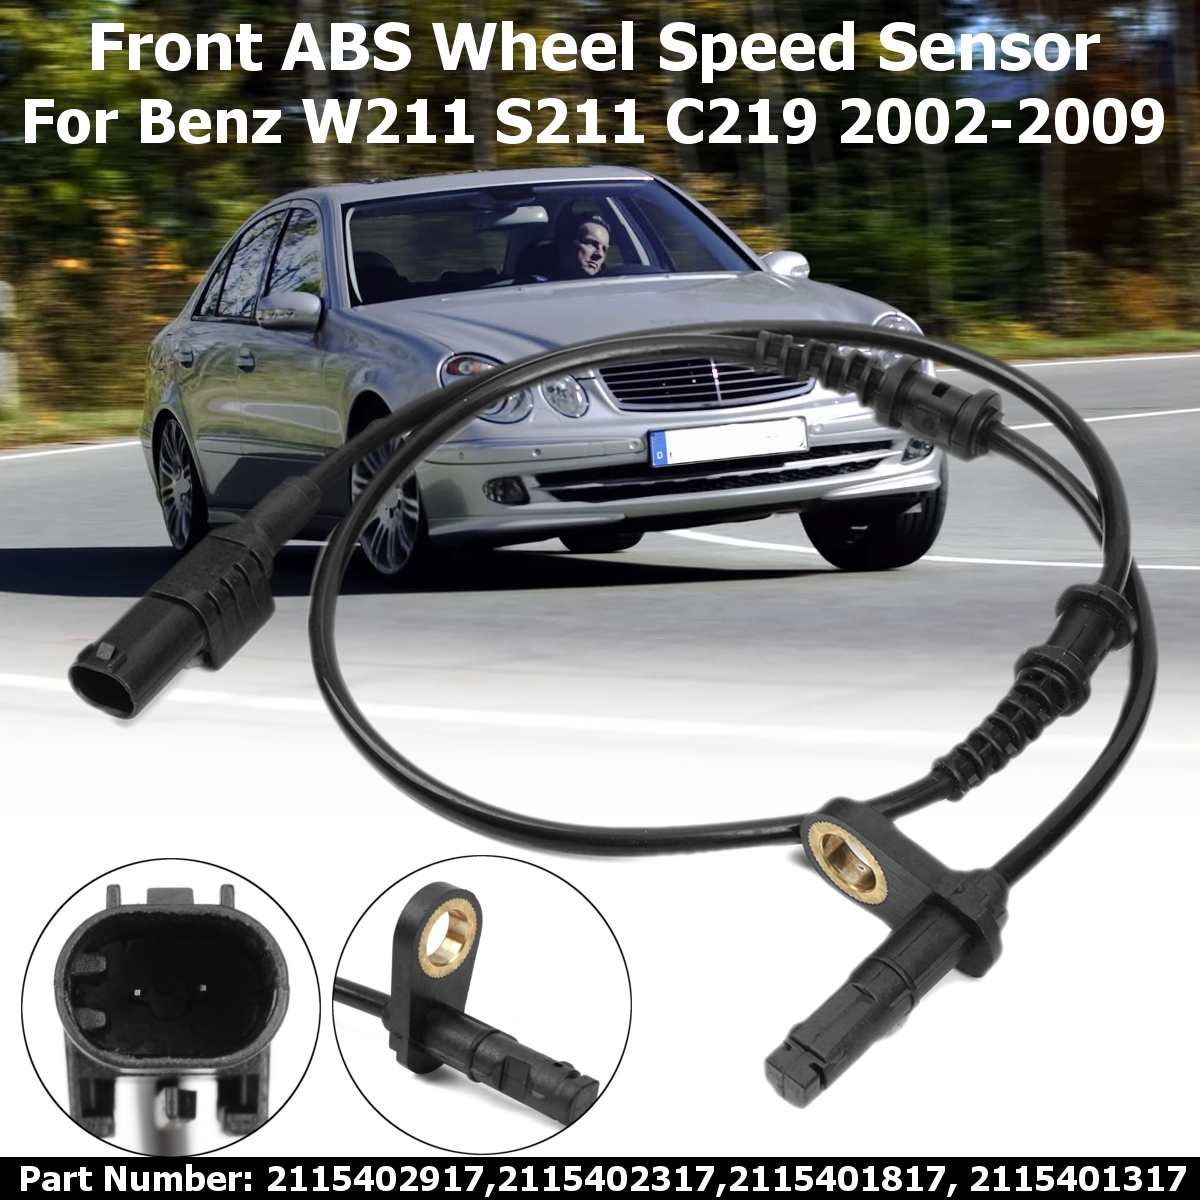 Hot Sale For Mercedes-benz W211 S211 C219 W212 E220 2002 2003 04 05 06 2007 2008 2009 #2115402917 Front Left/right Abs Wheel Speed Sensor Structural Disabilities